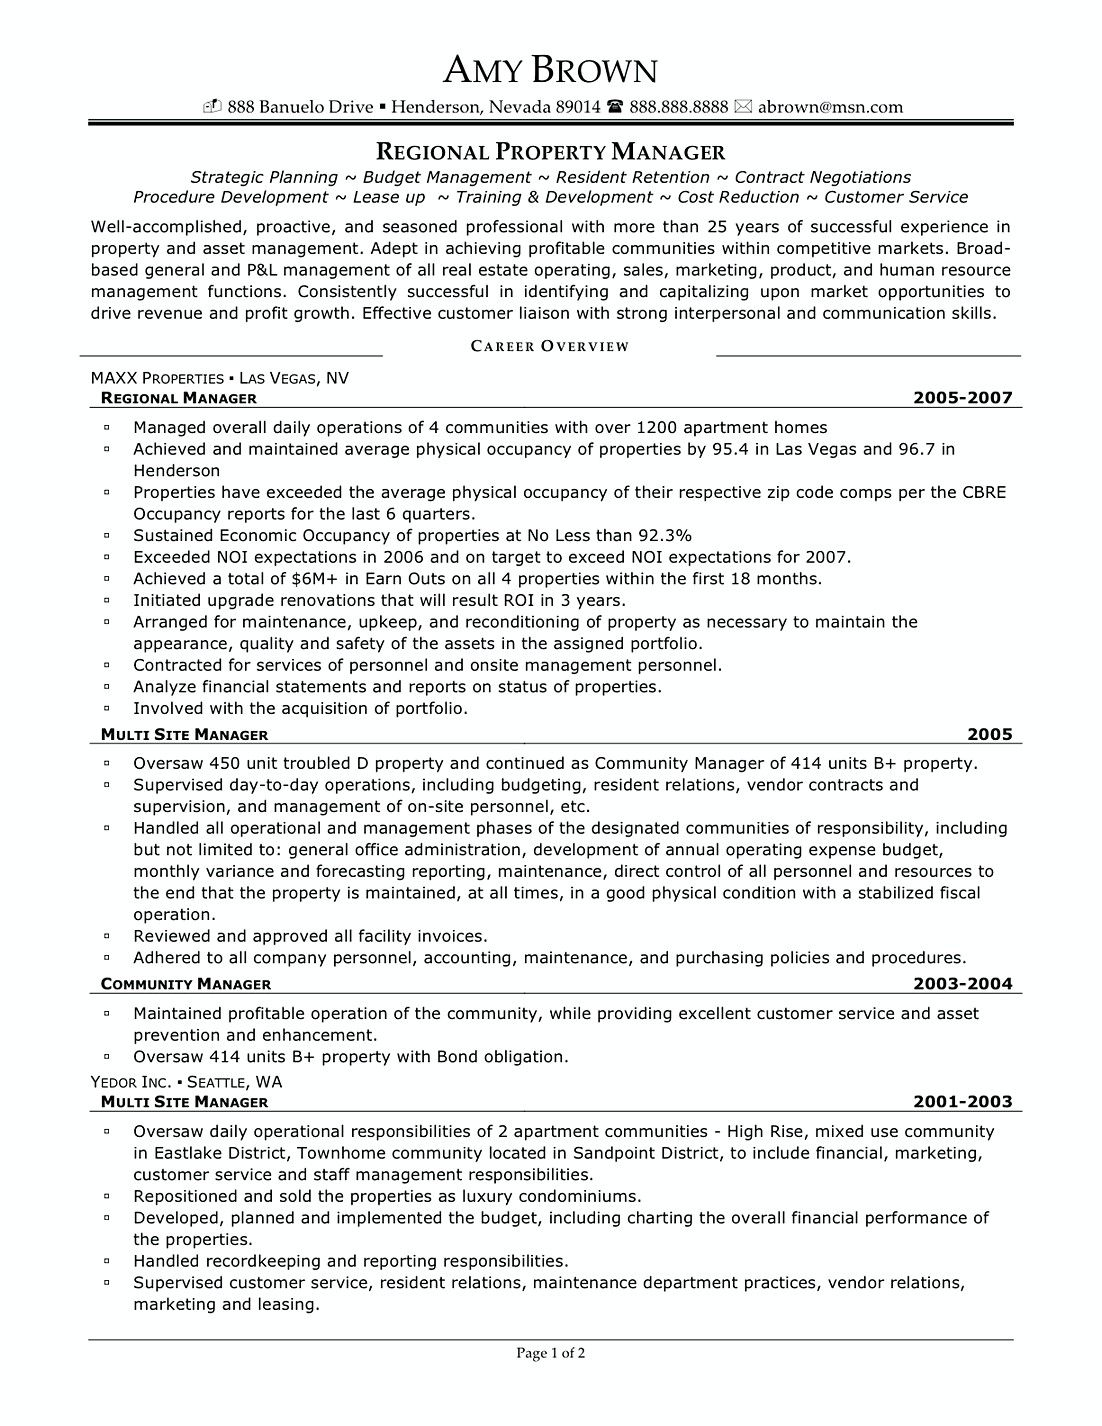 Regional Property Manager Resume Samples Commercial Interested In Working Field Read The Article About Creating An